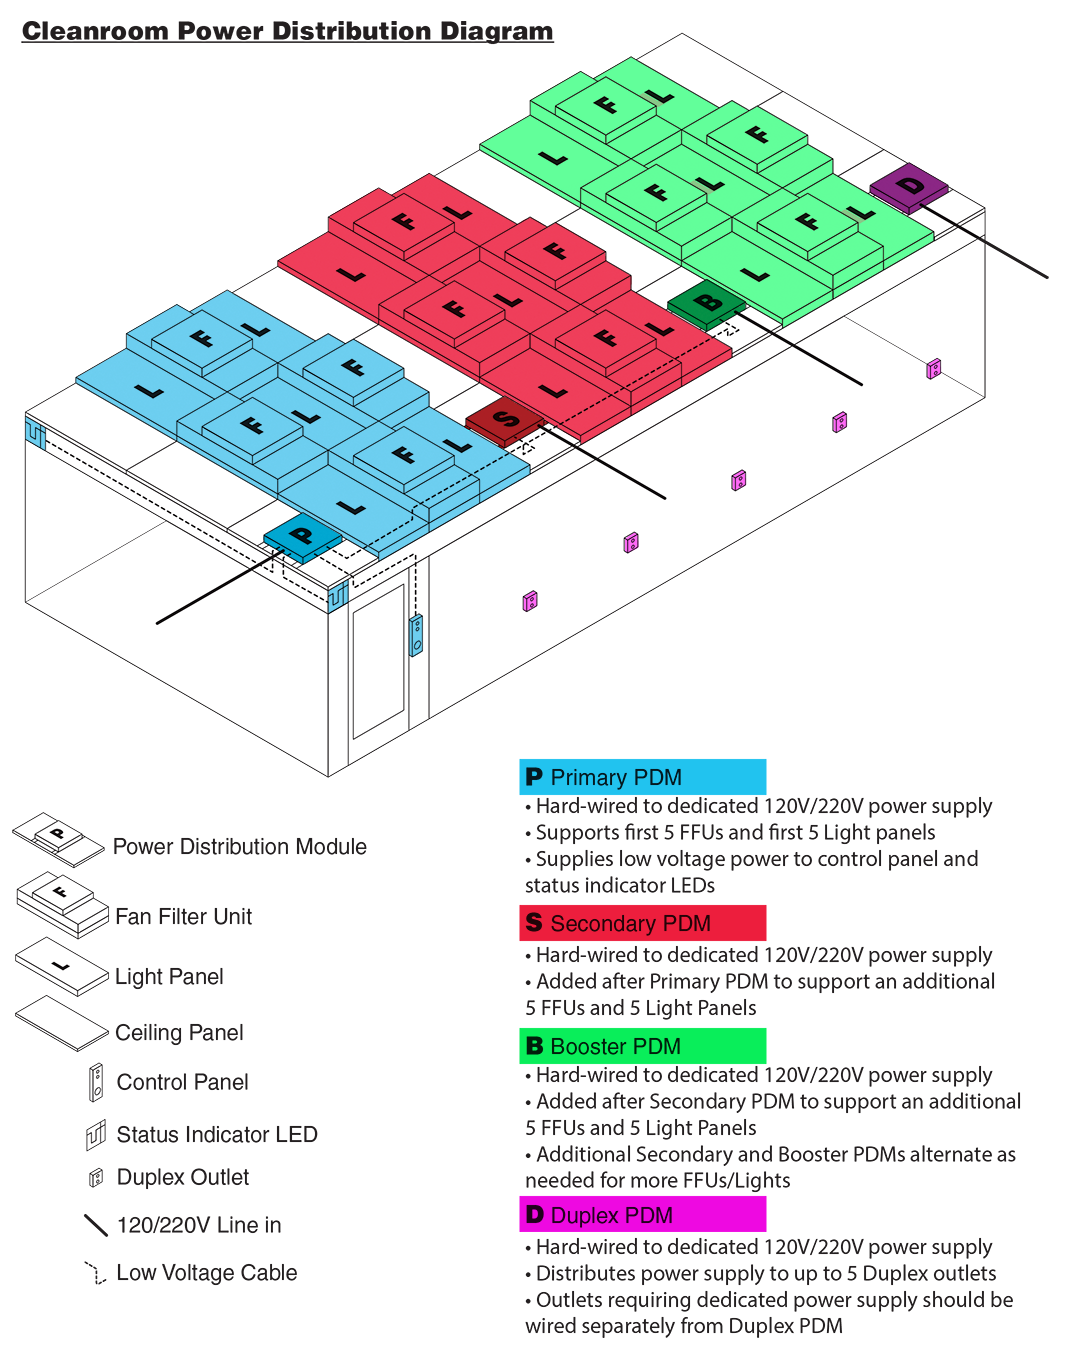 Electrical diagram for power distribution modules used on a cleanroom